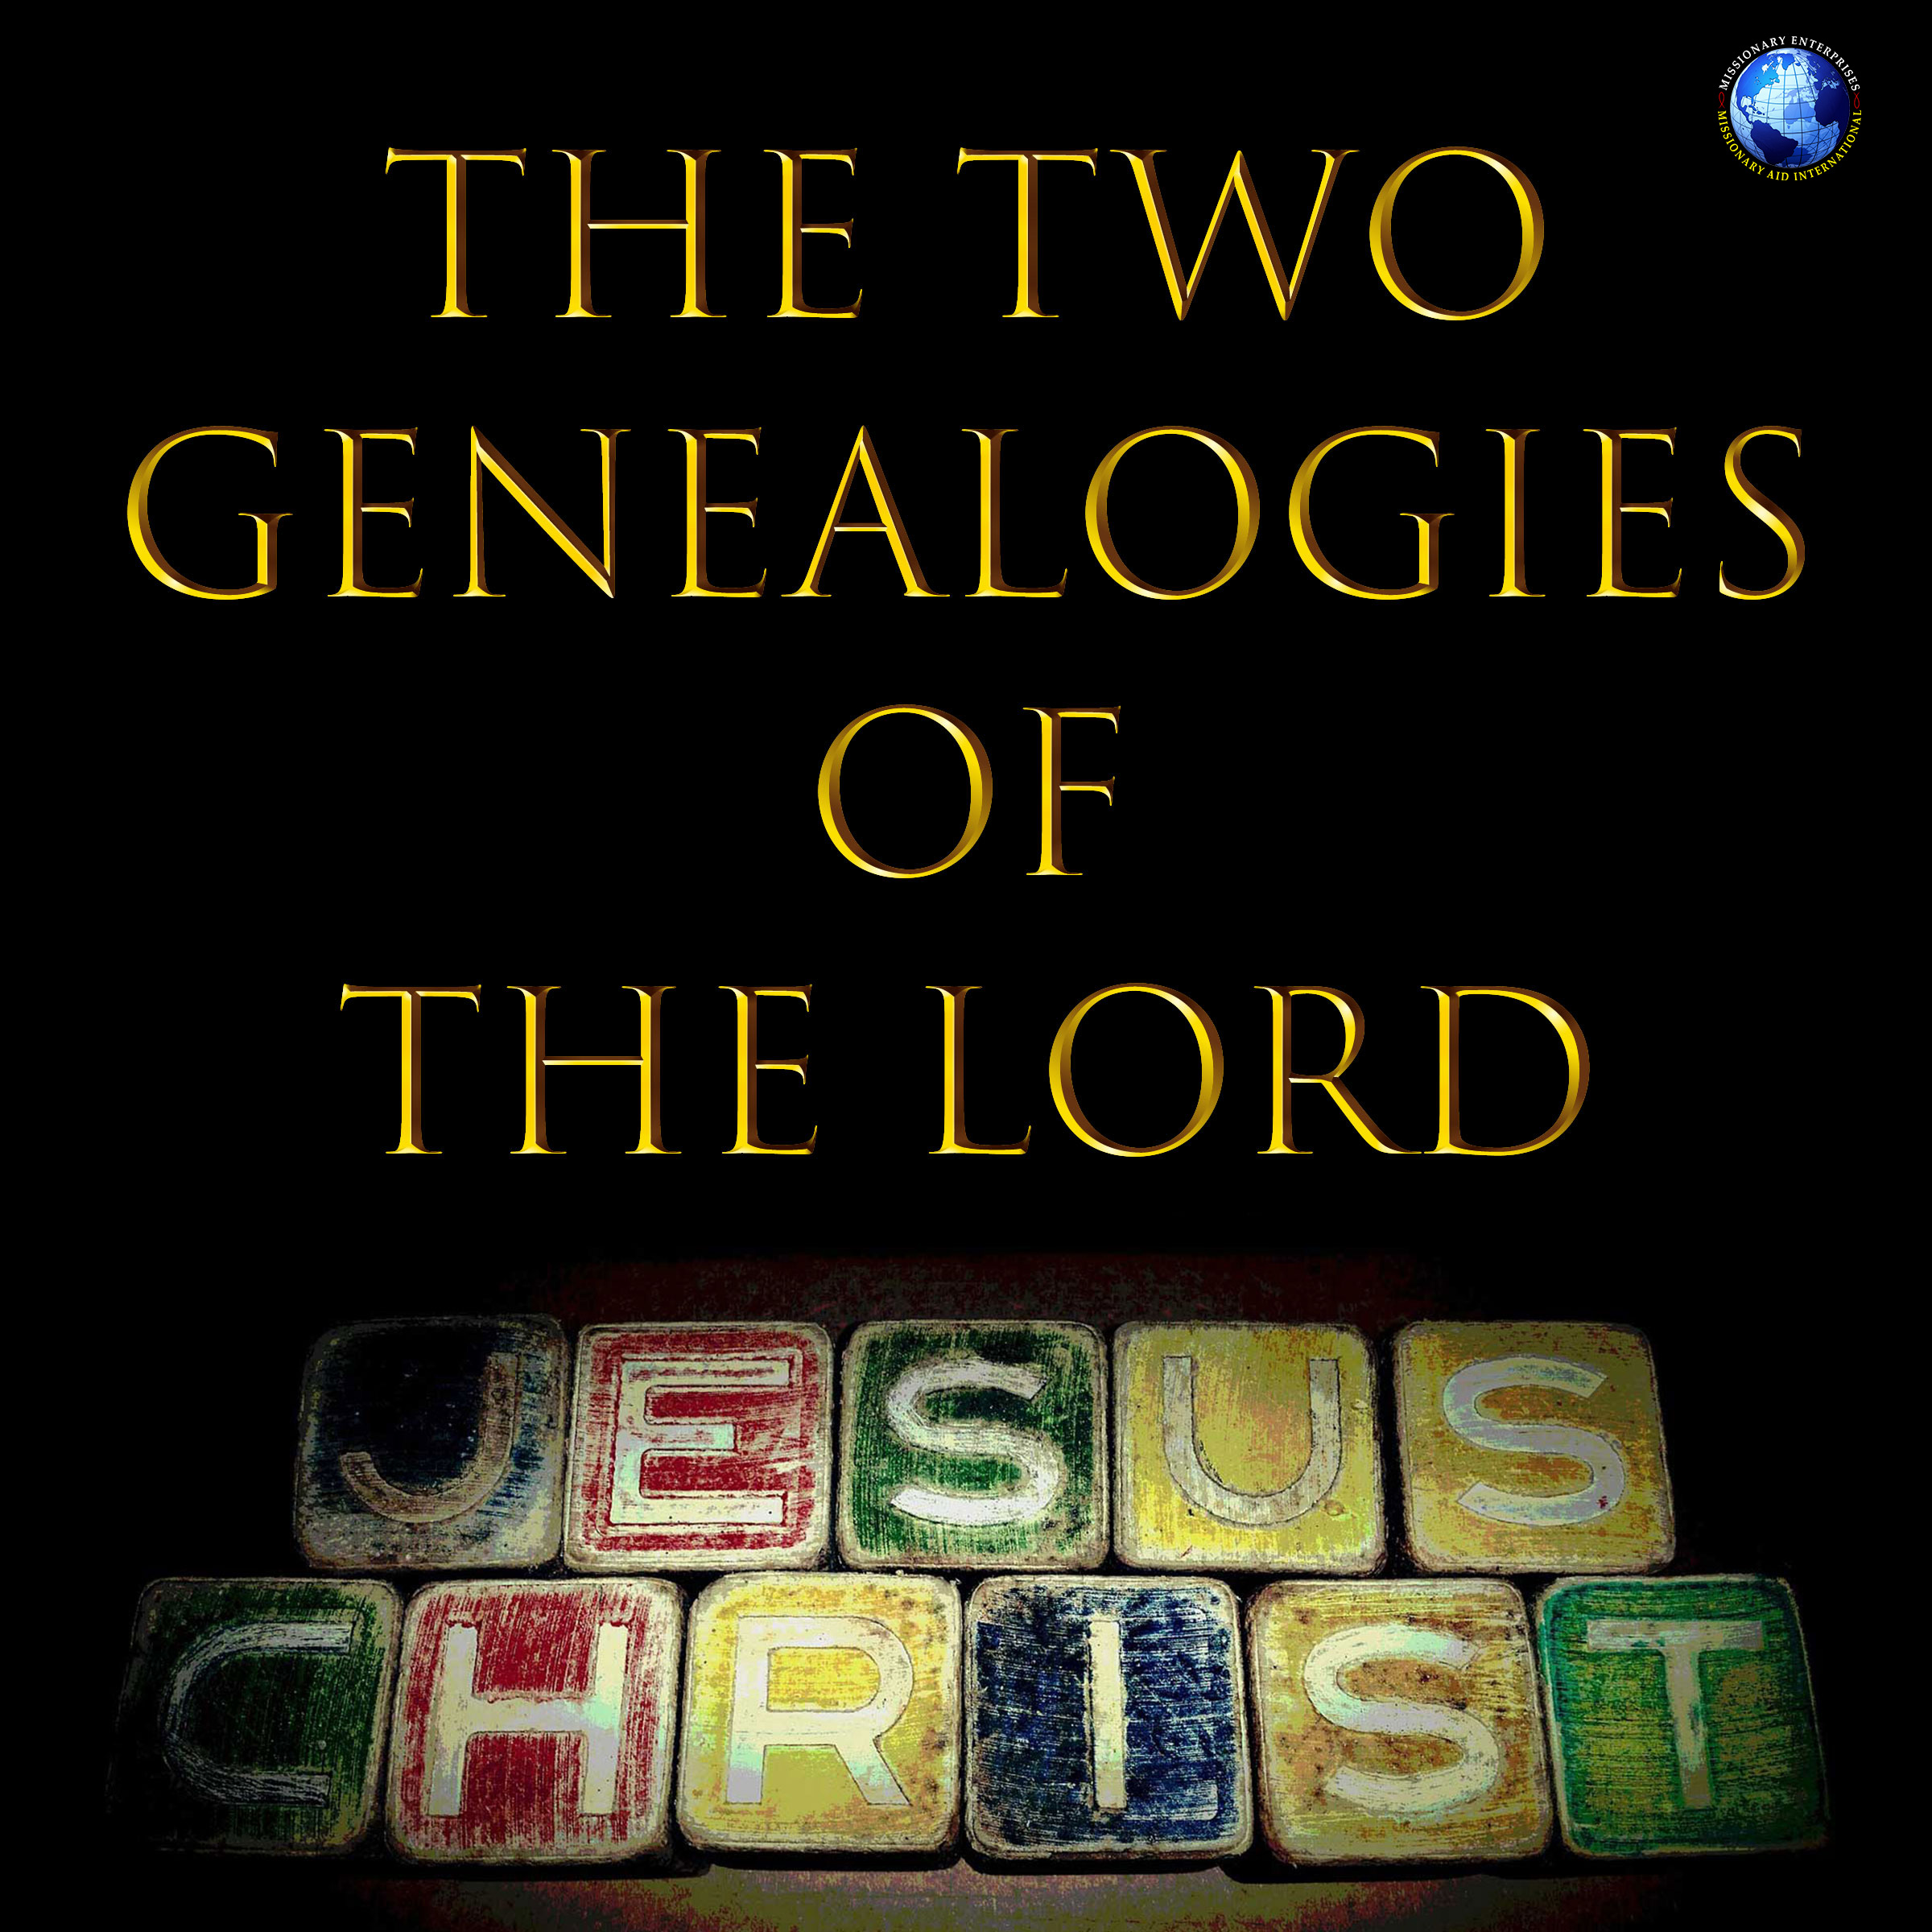 The Two Genealogies of The Lord Jesus Christ